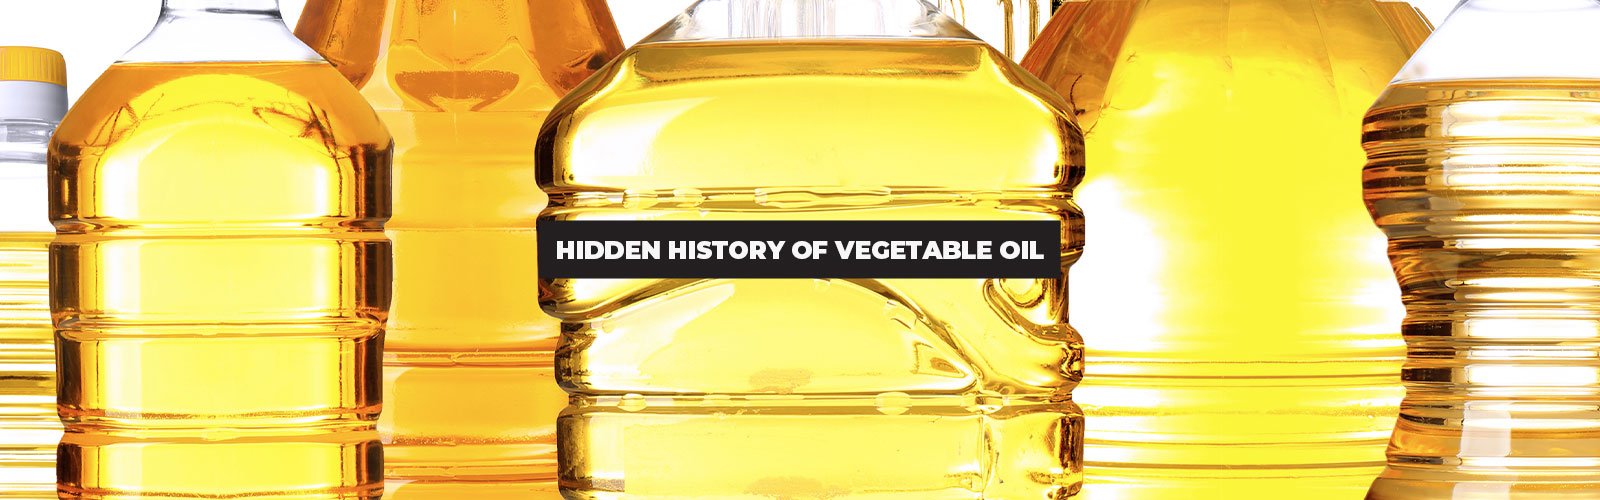 The Hidden History of Why Vegetable Oil Is in Your Kitchen Will Shock You